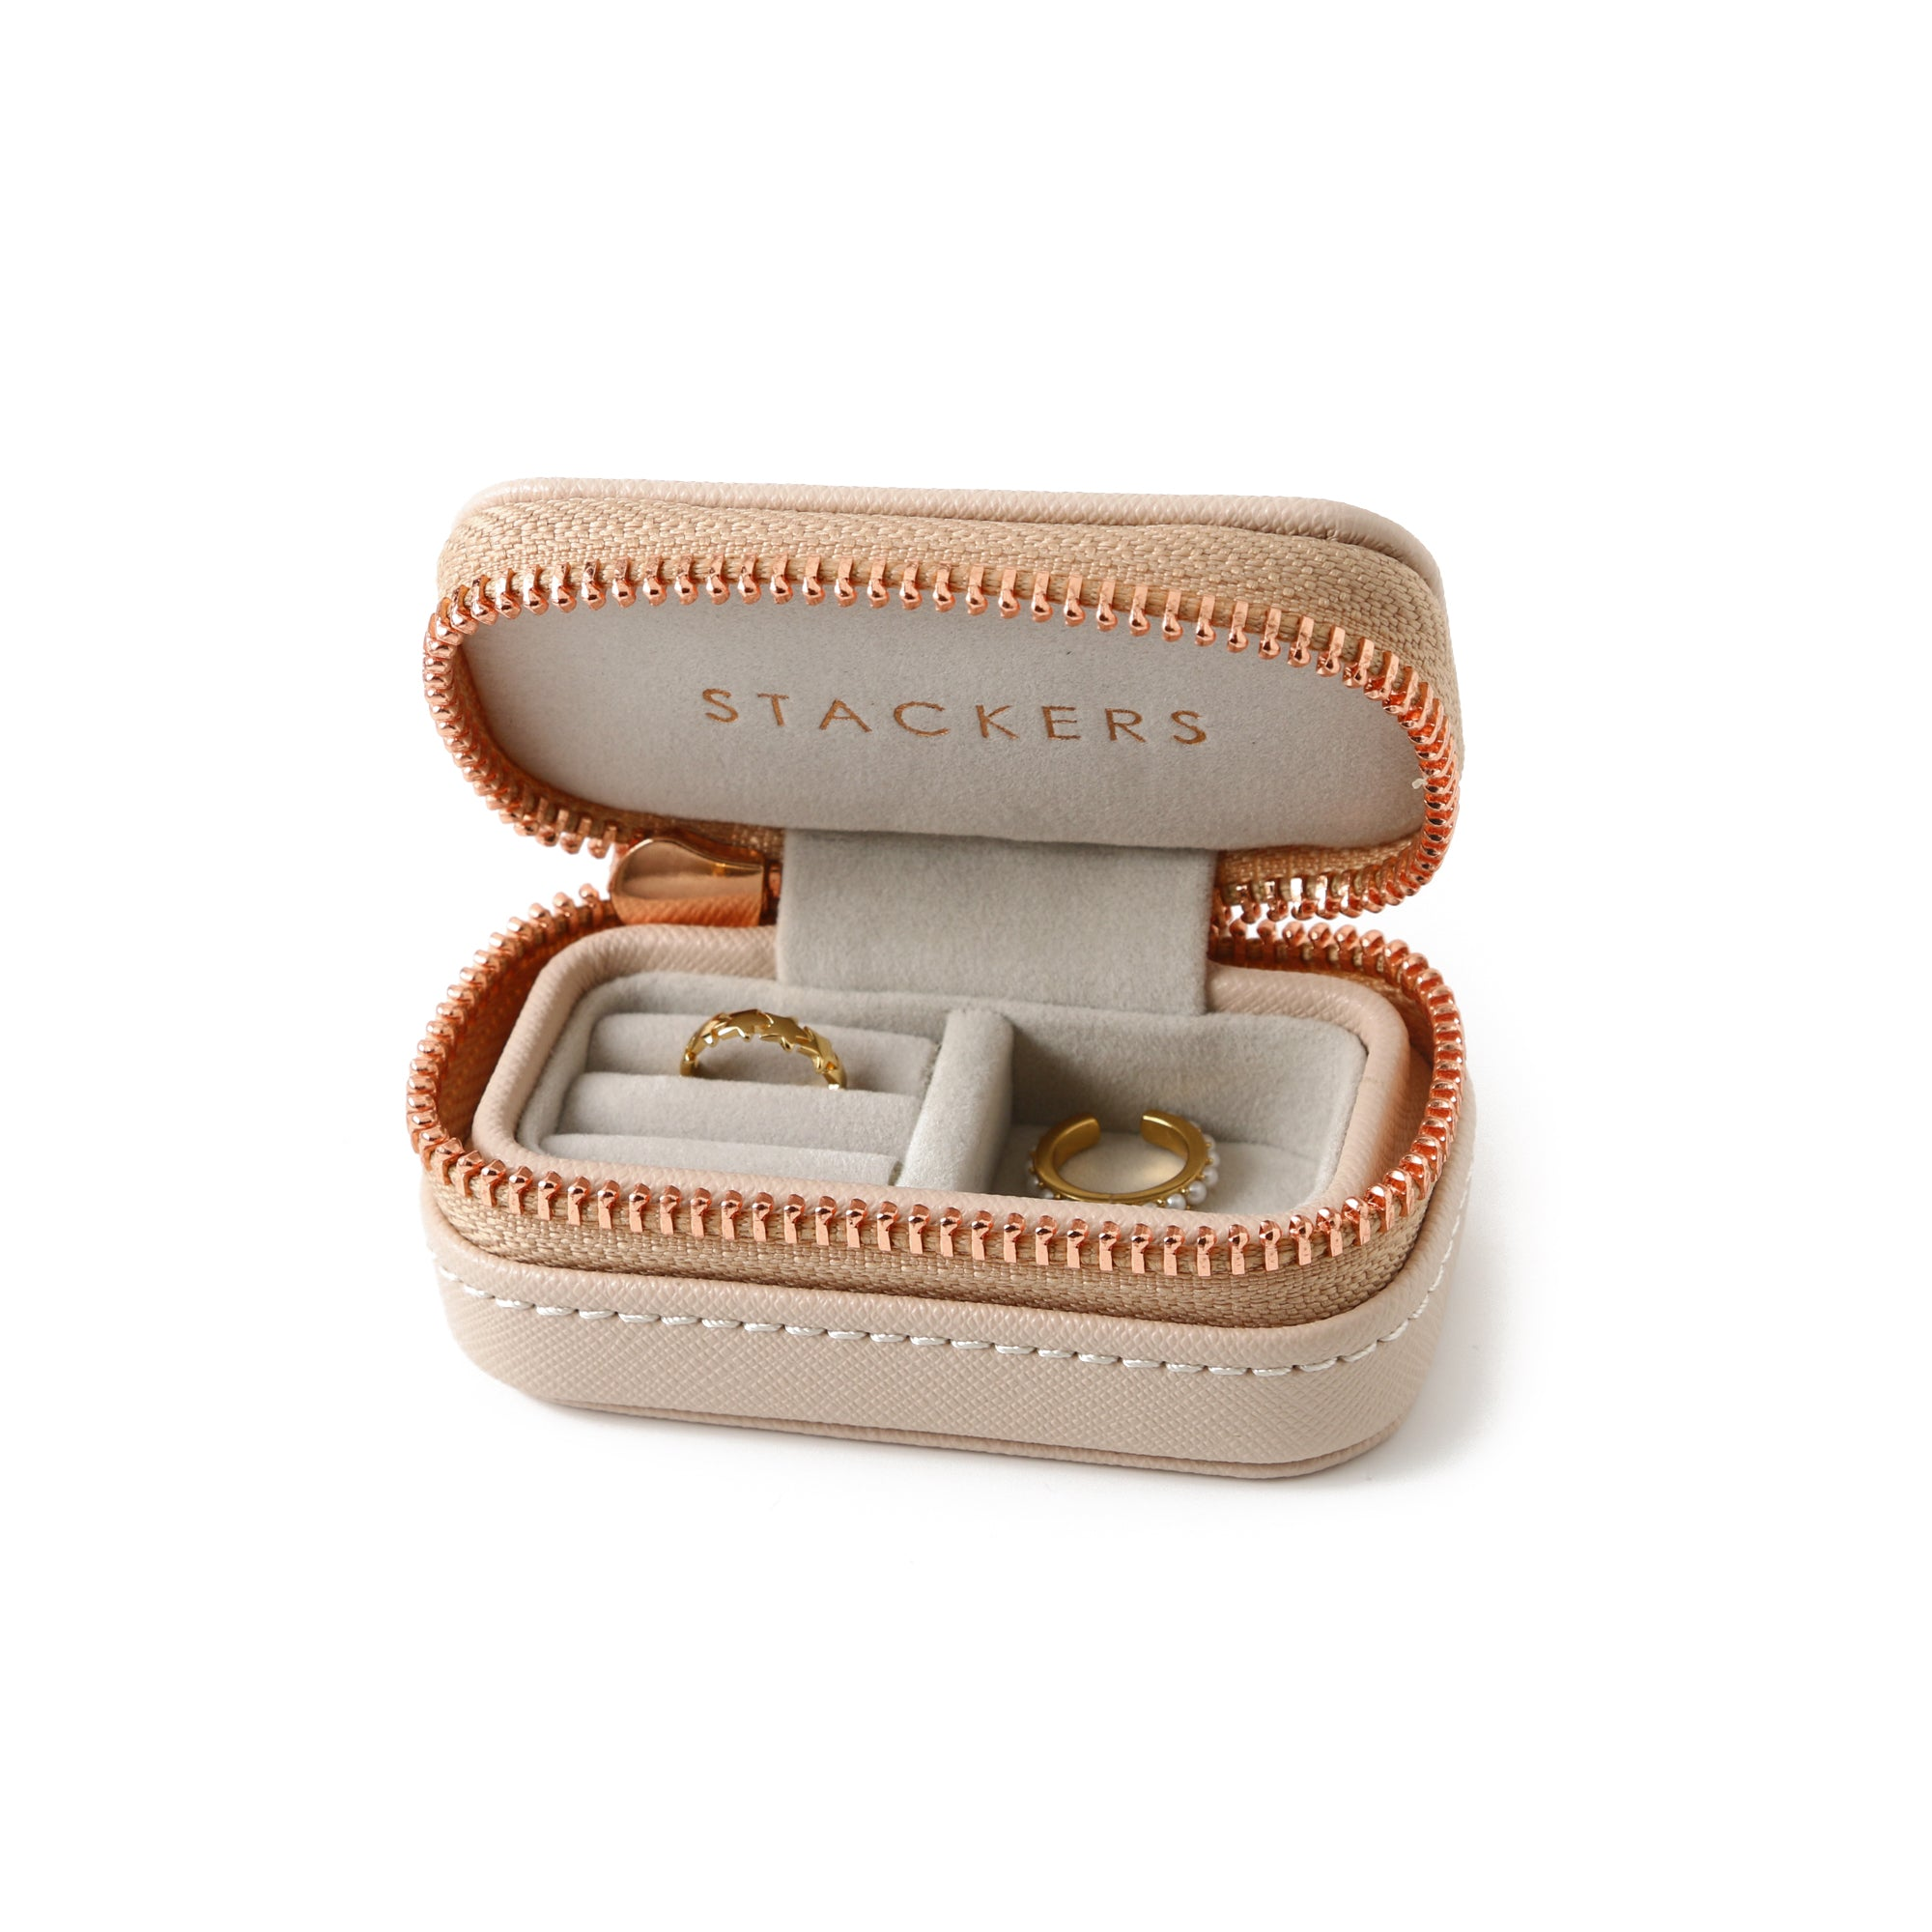 Stackers Petite Travel Jewellery Box - Blush